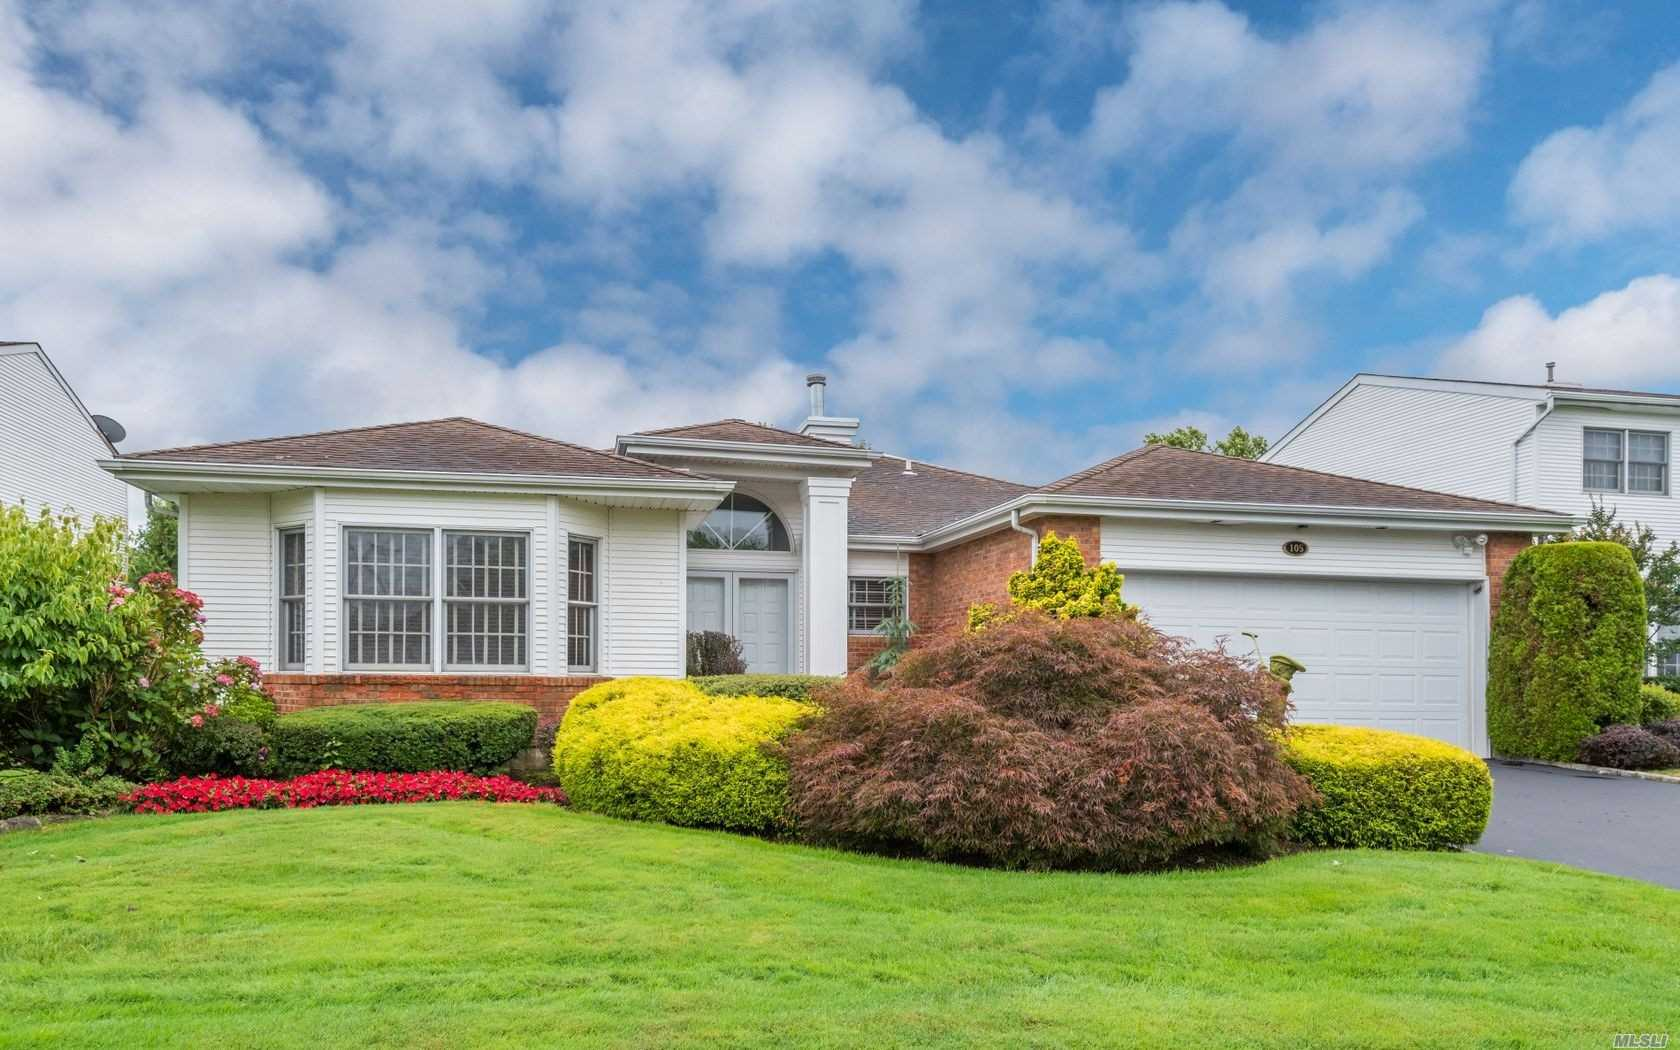 Photo of home for sale at 105 Fairway View Dr, Commack NY